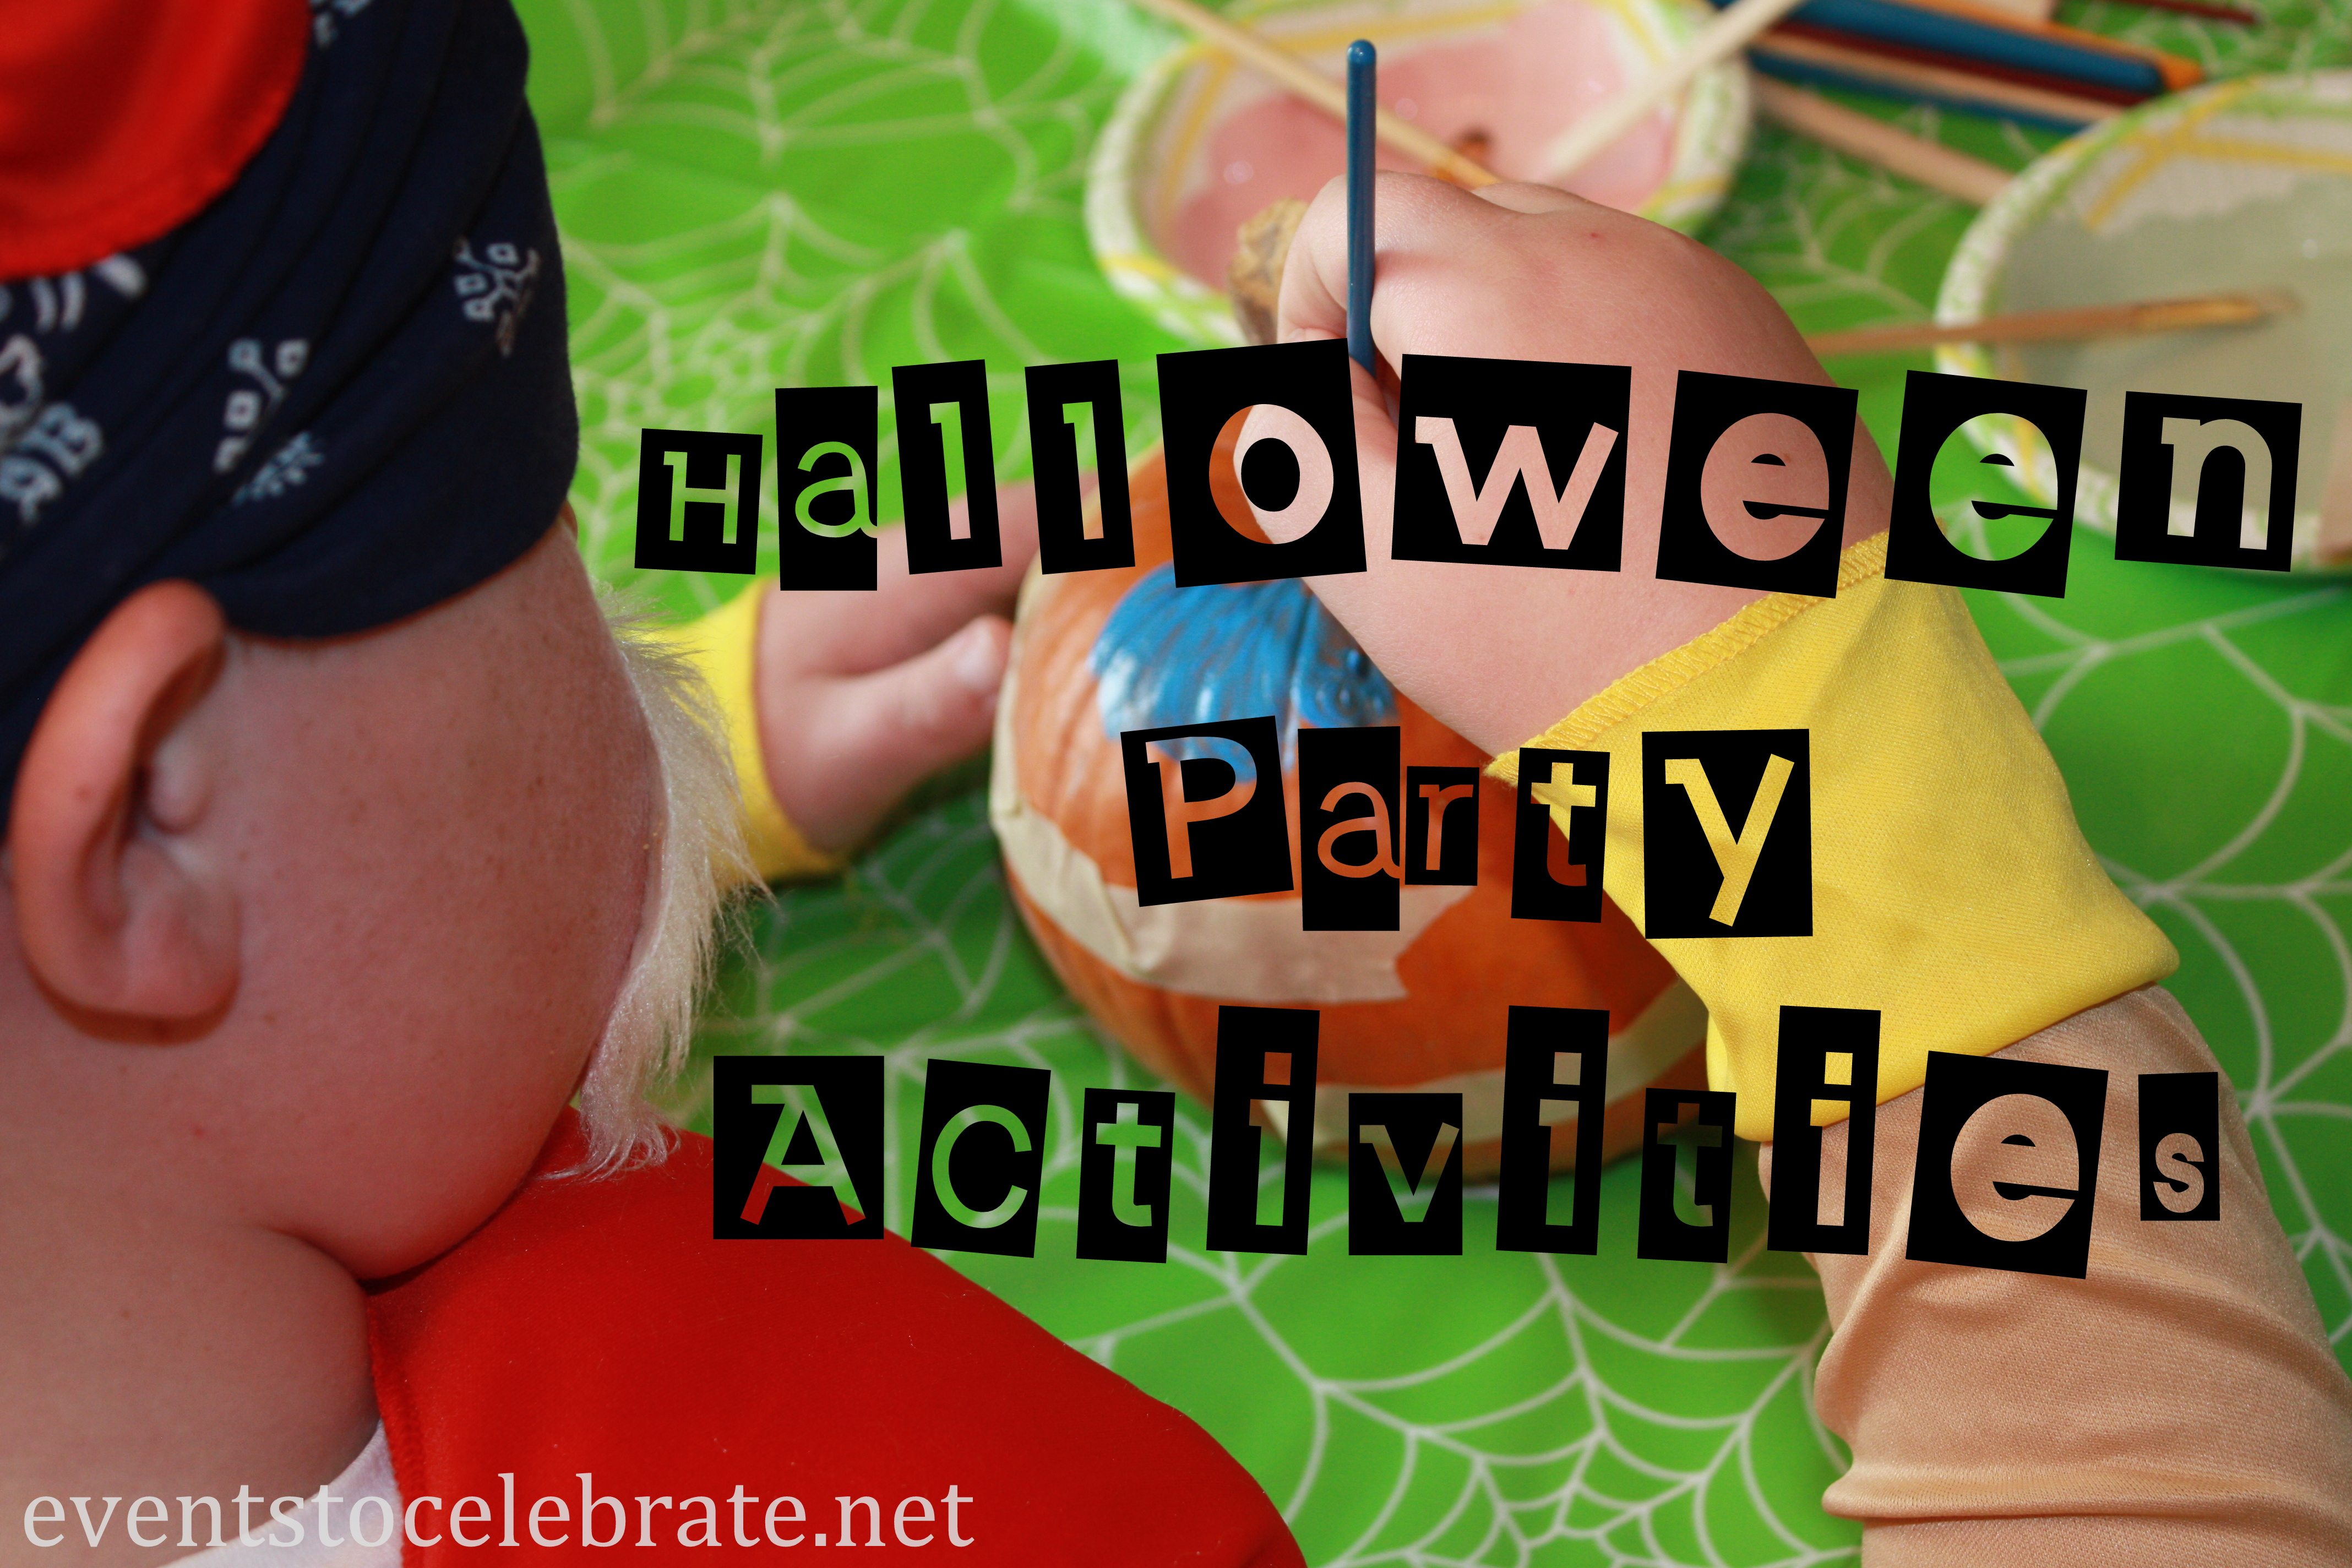 Halloween Party Activities for Kids - events to CELEBRATE!